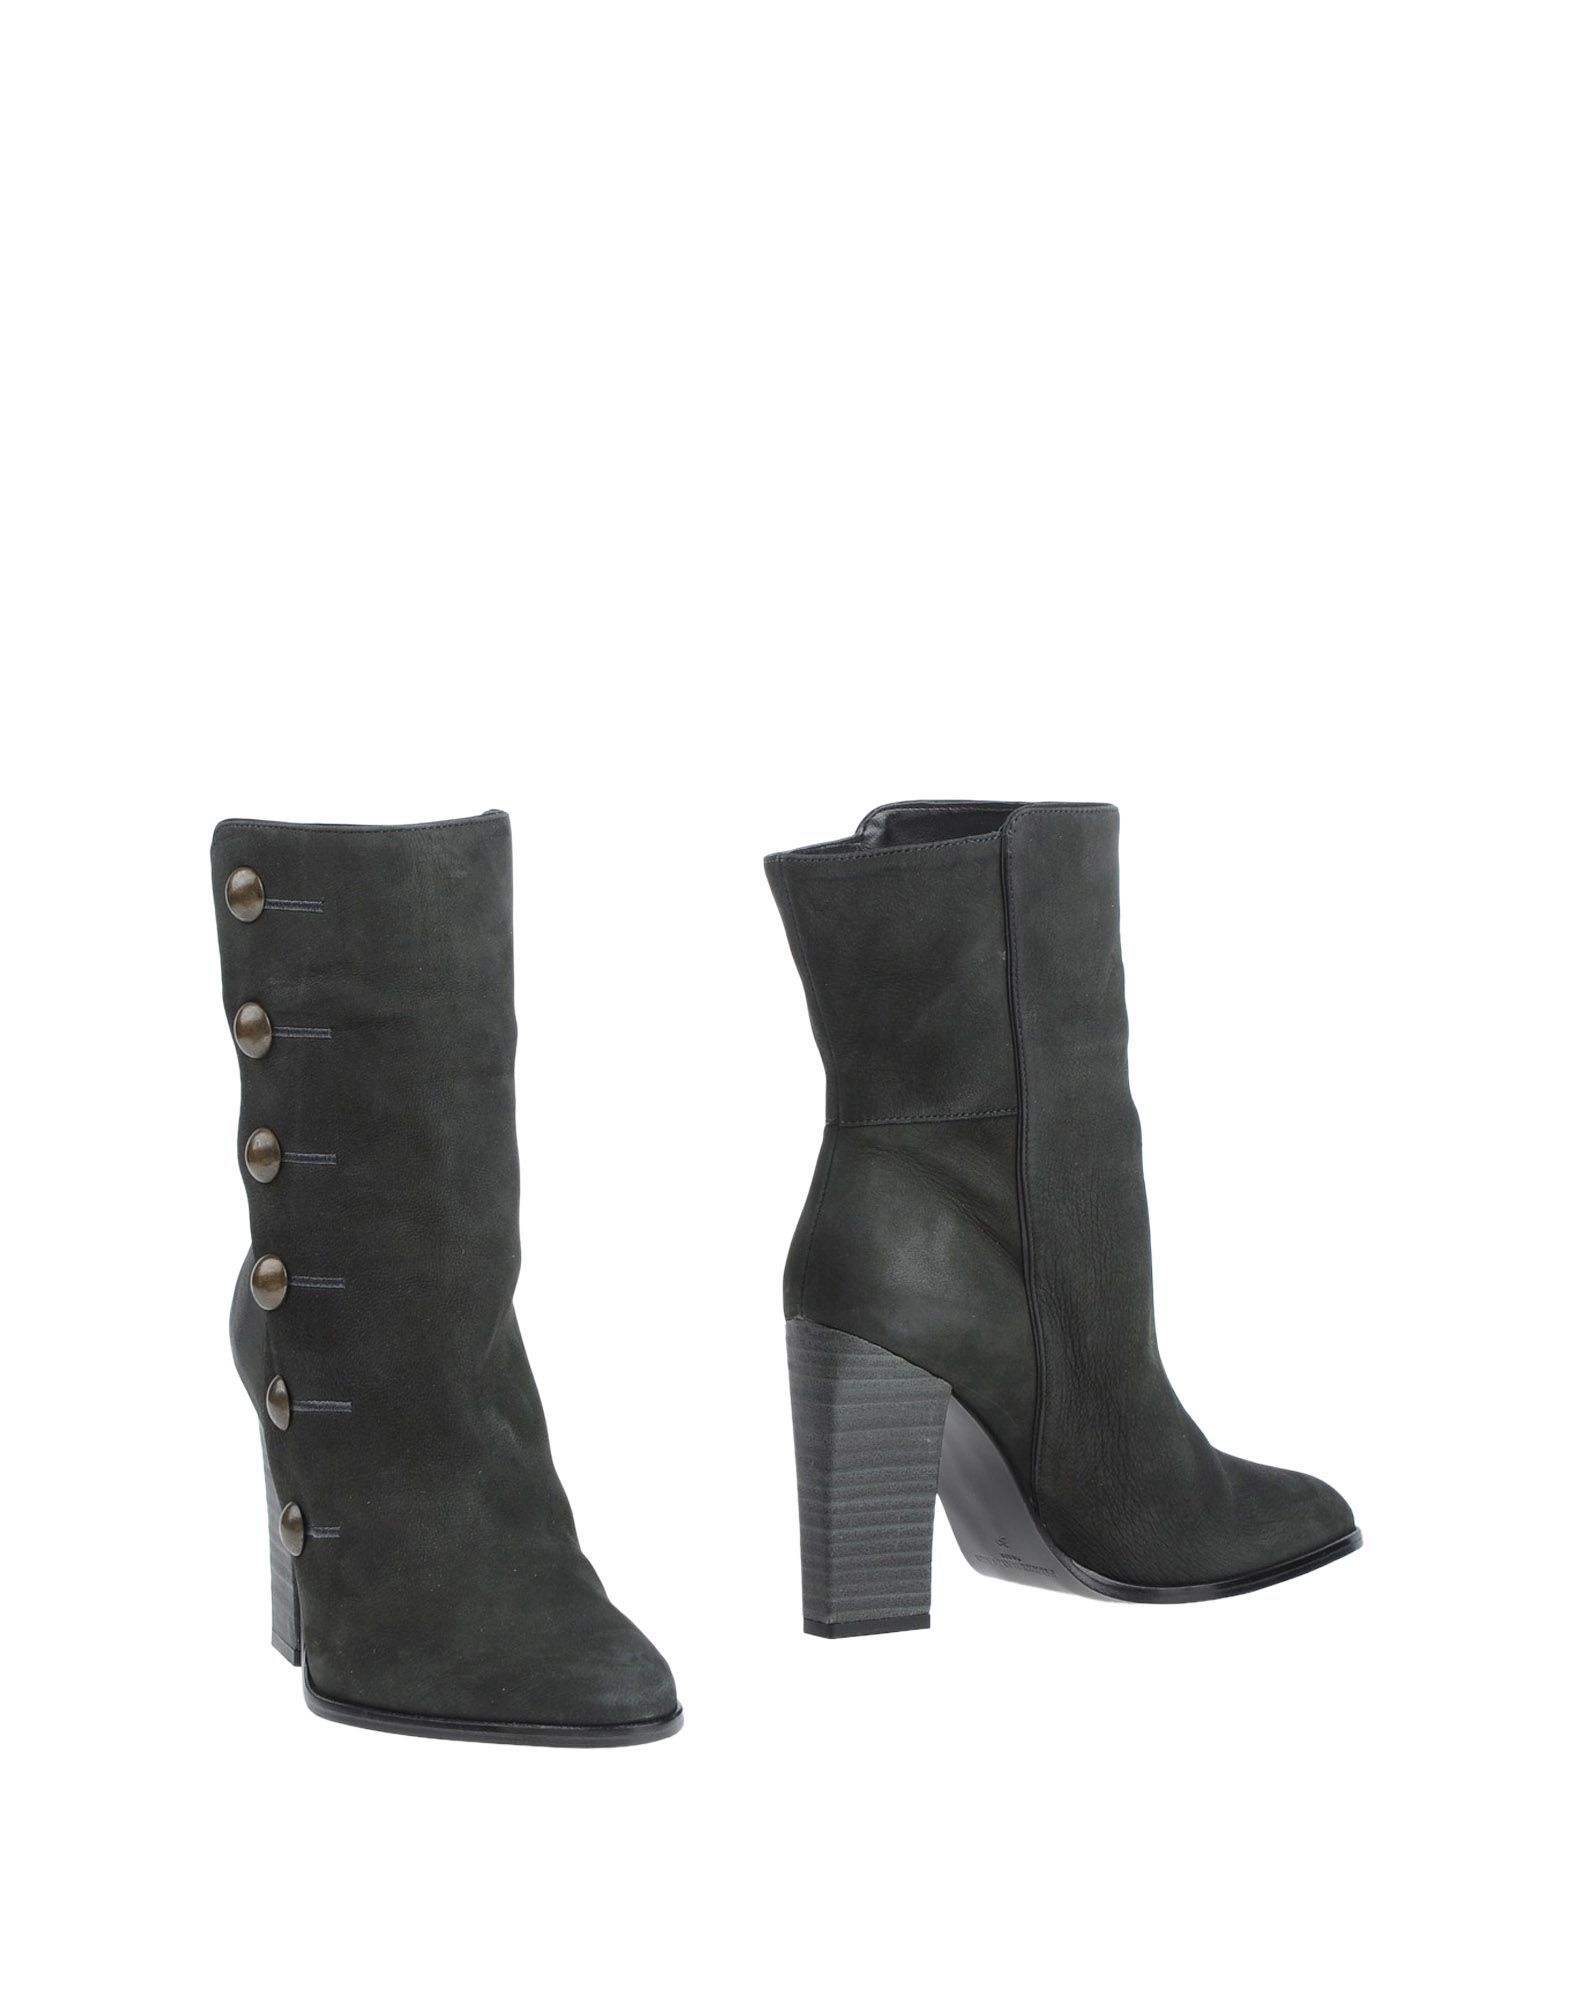 Bottine Pierre Balmain Femme - Bottines Pierre Balmain sur